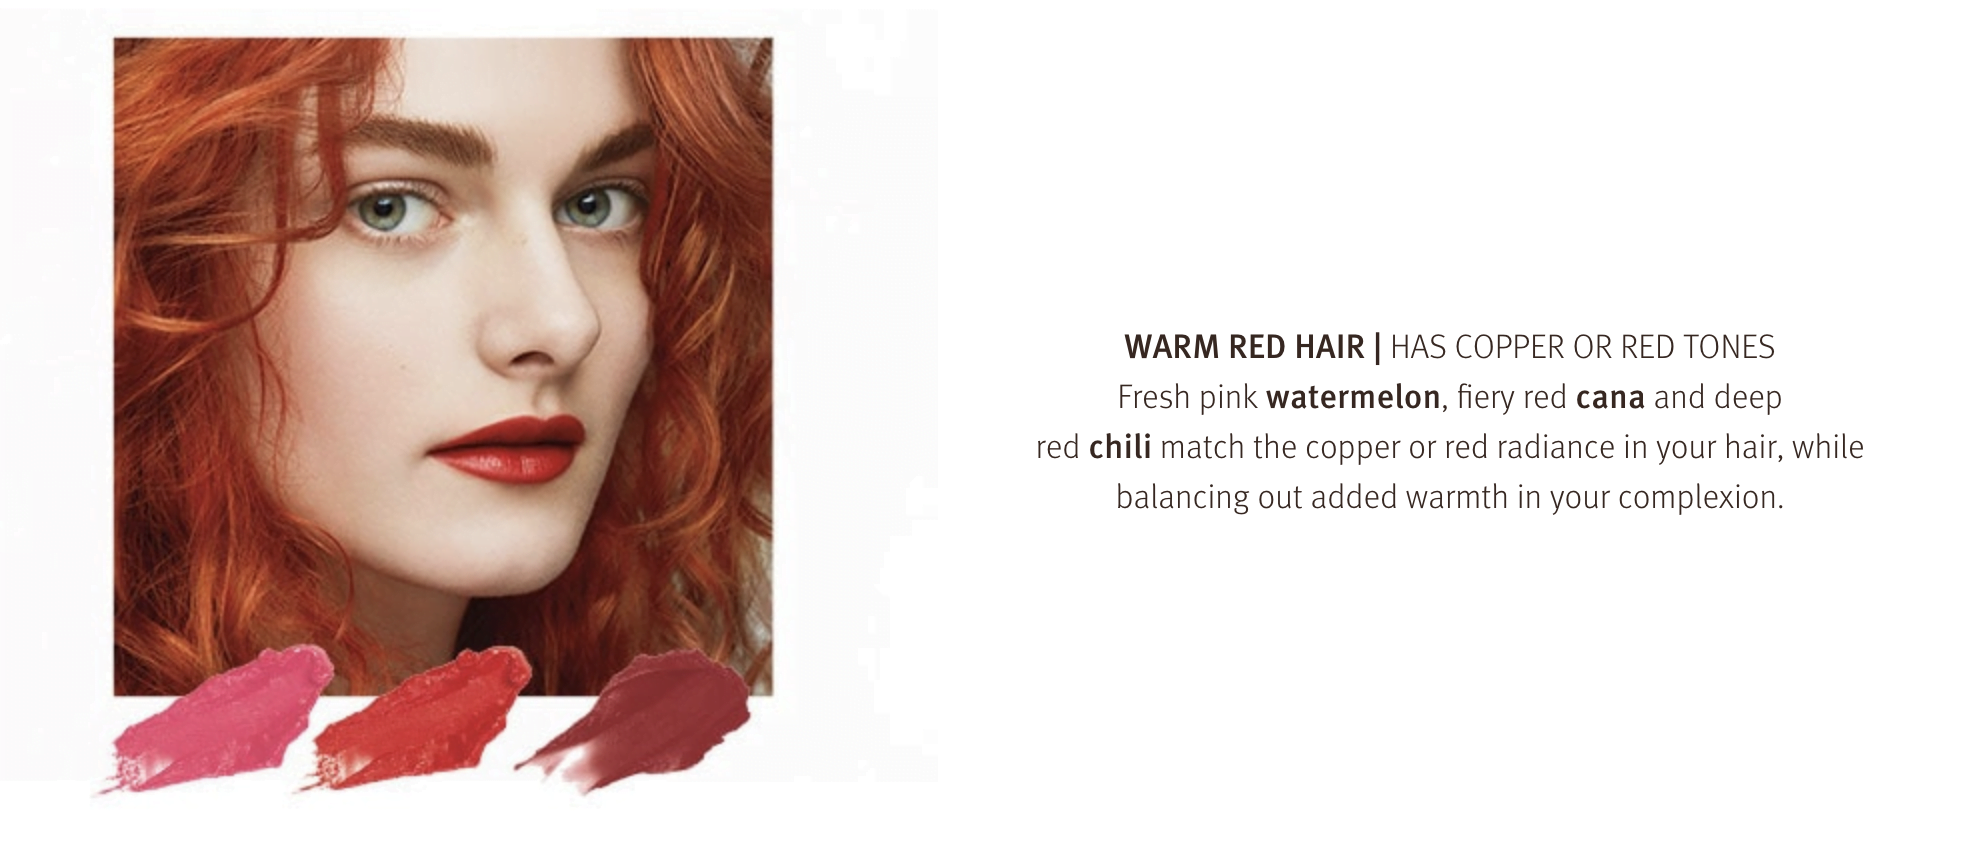 Warm red hair has copper or red tones in it. Match your hair colour with some bold warm lip colours.